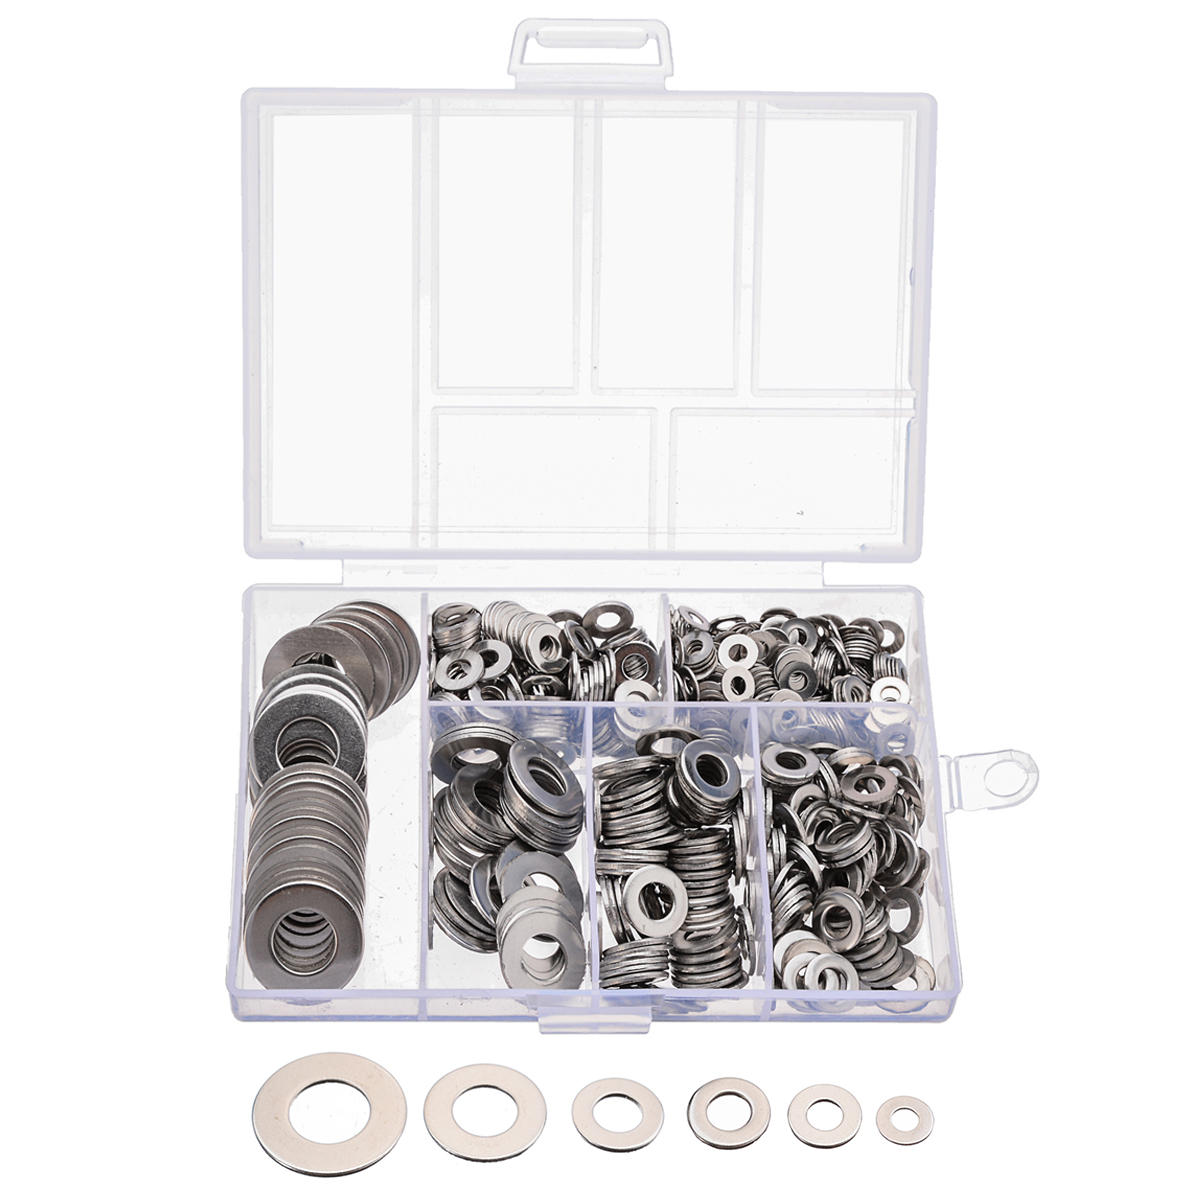 660pcs/set M3 M4 M5 M6 M8 M10 Stainless Steel Flat Washer Plain Gasket Spacers Kit Screw Bolt Fastener image